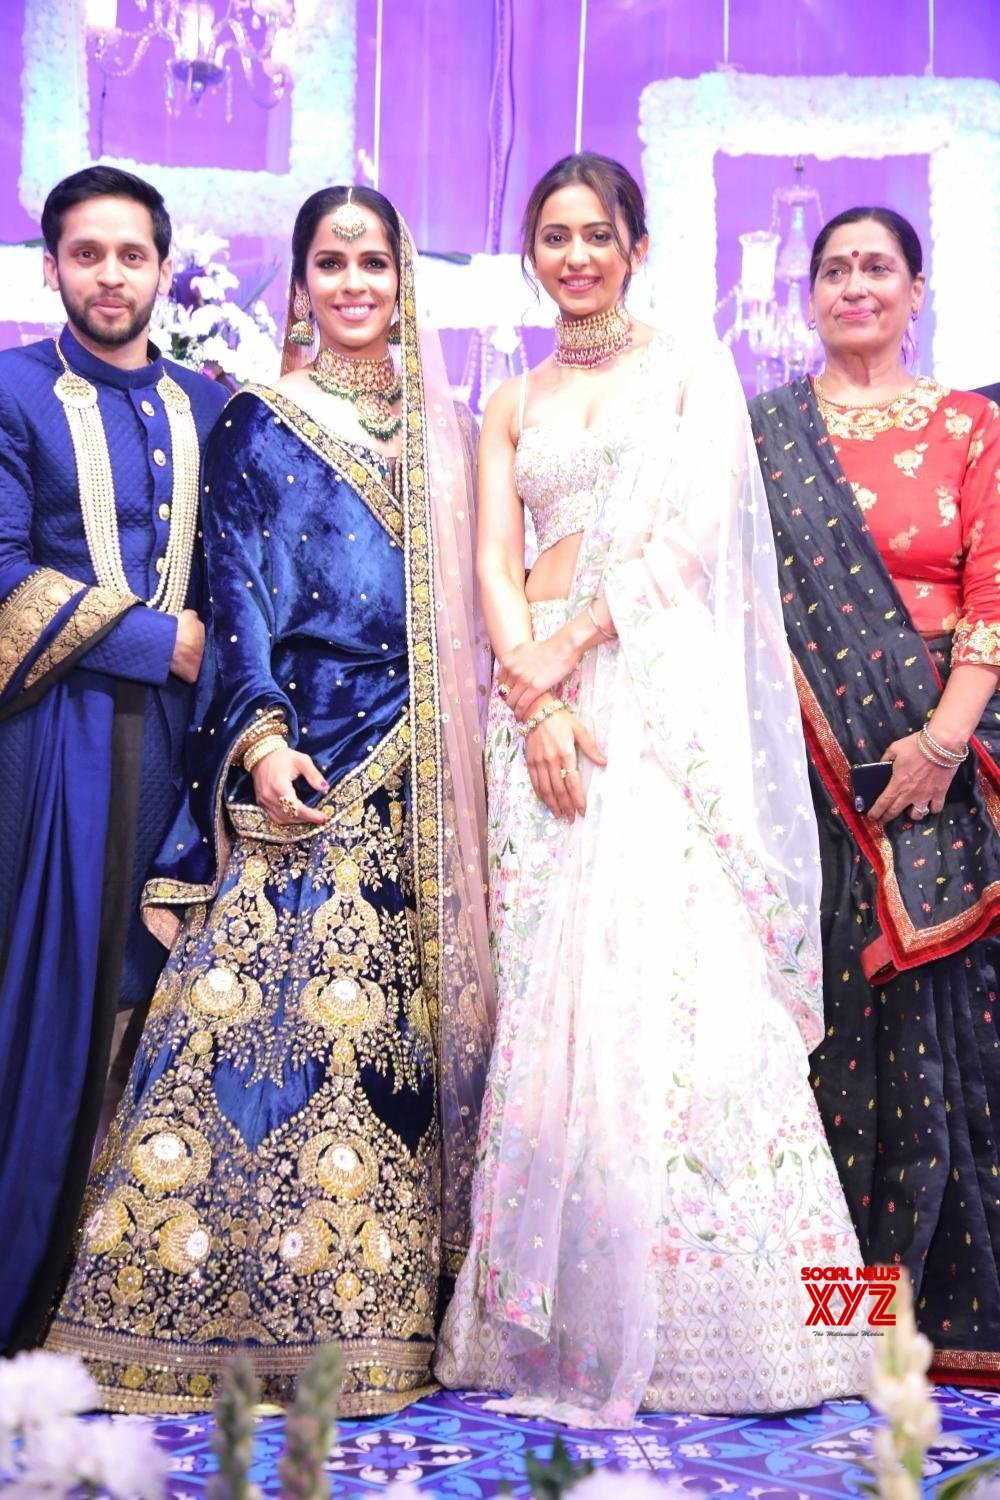 Hyderabad: - Wedding reception of Saina Nehwal and Parupalli Kashyap #Gallery